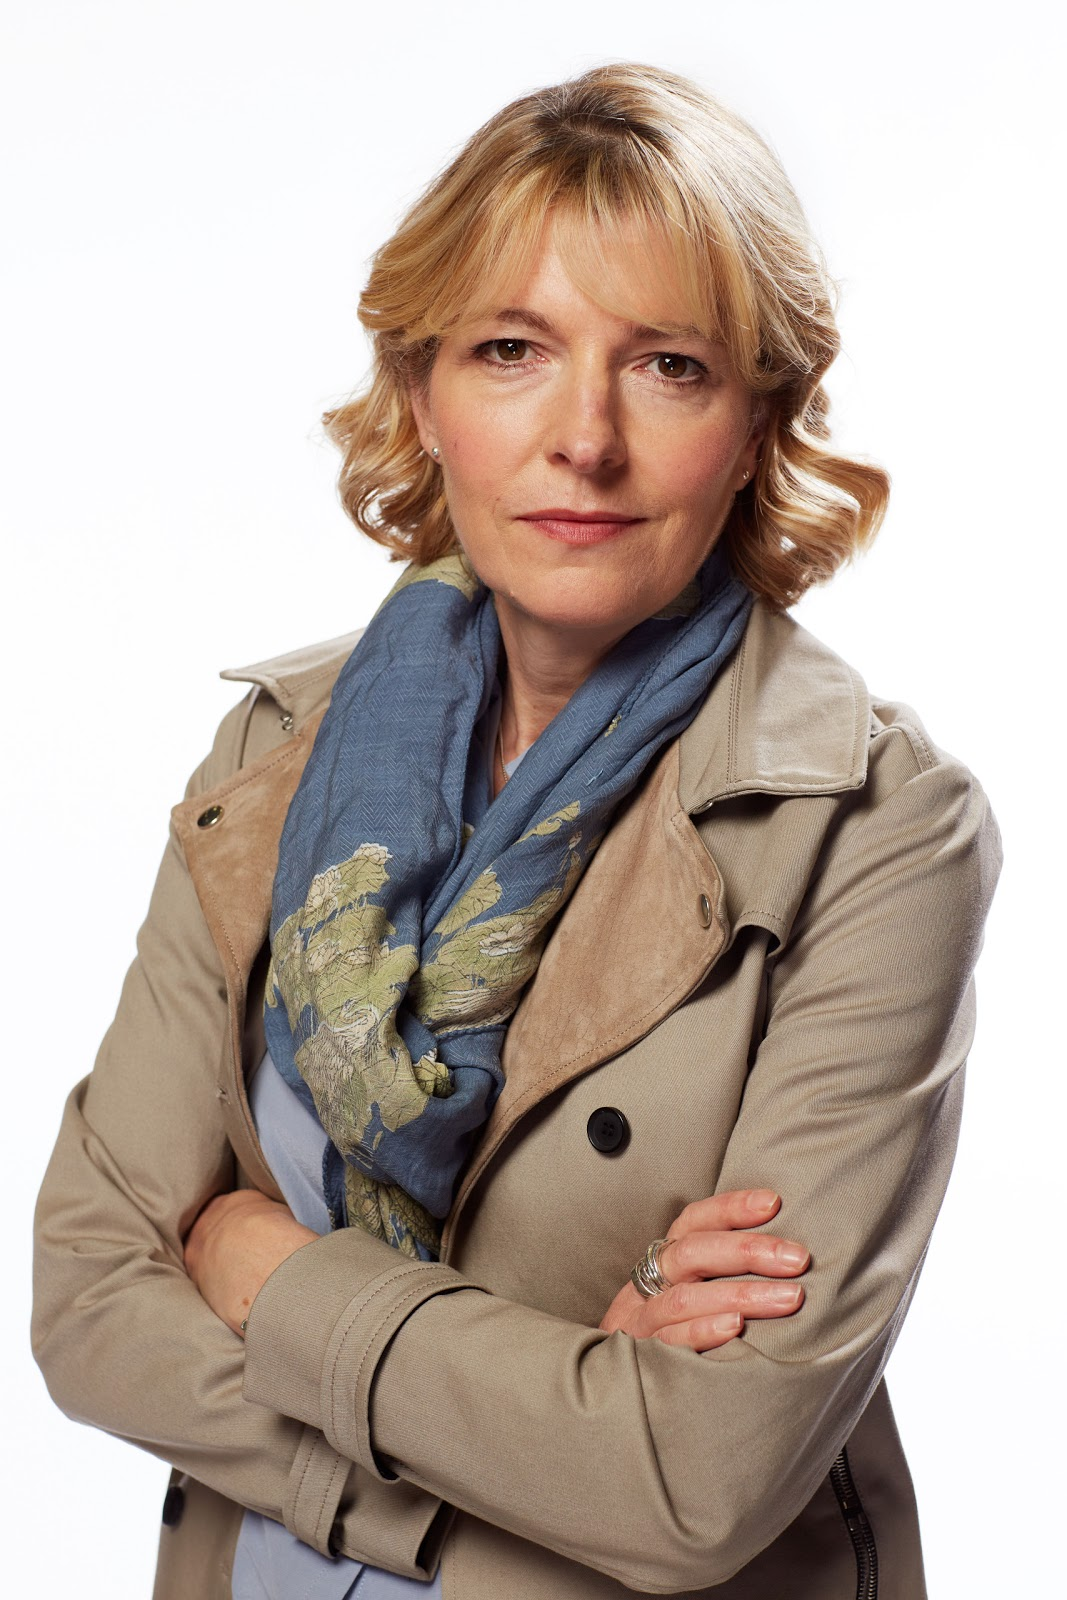 Jemma Redgrave (born 1965) Jemma Redgrave (born 1965) new photo